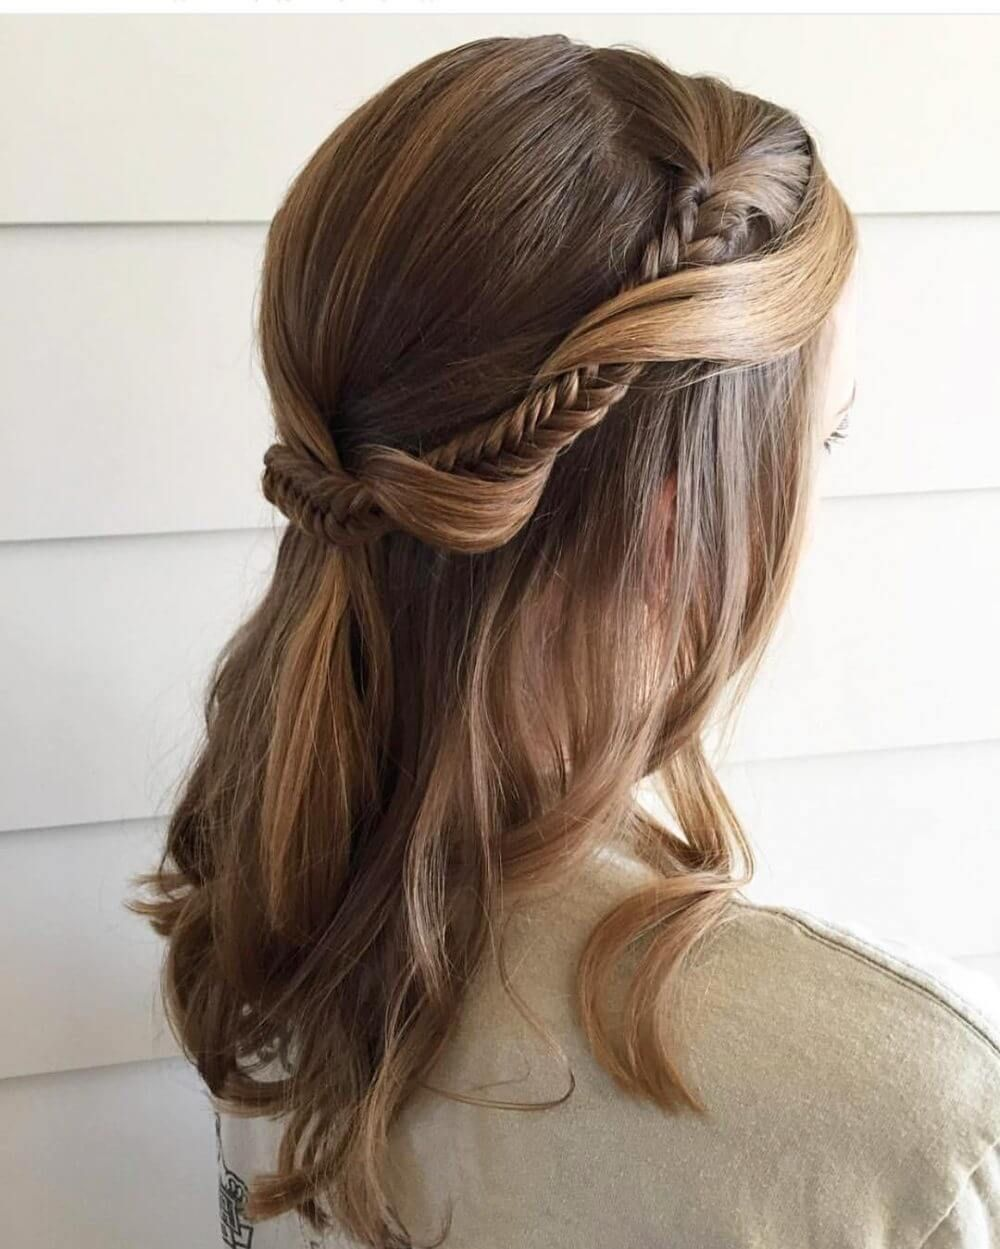 16 Simple Quick Easy Hairstyles Easy Cute Hairstyle In 2020 Easy Formal Hairstyles Easy Hair Updos Easy Homecoming Hairstyles